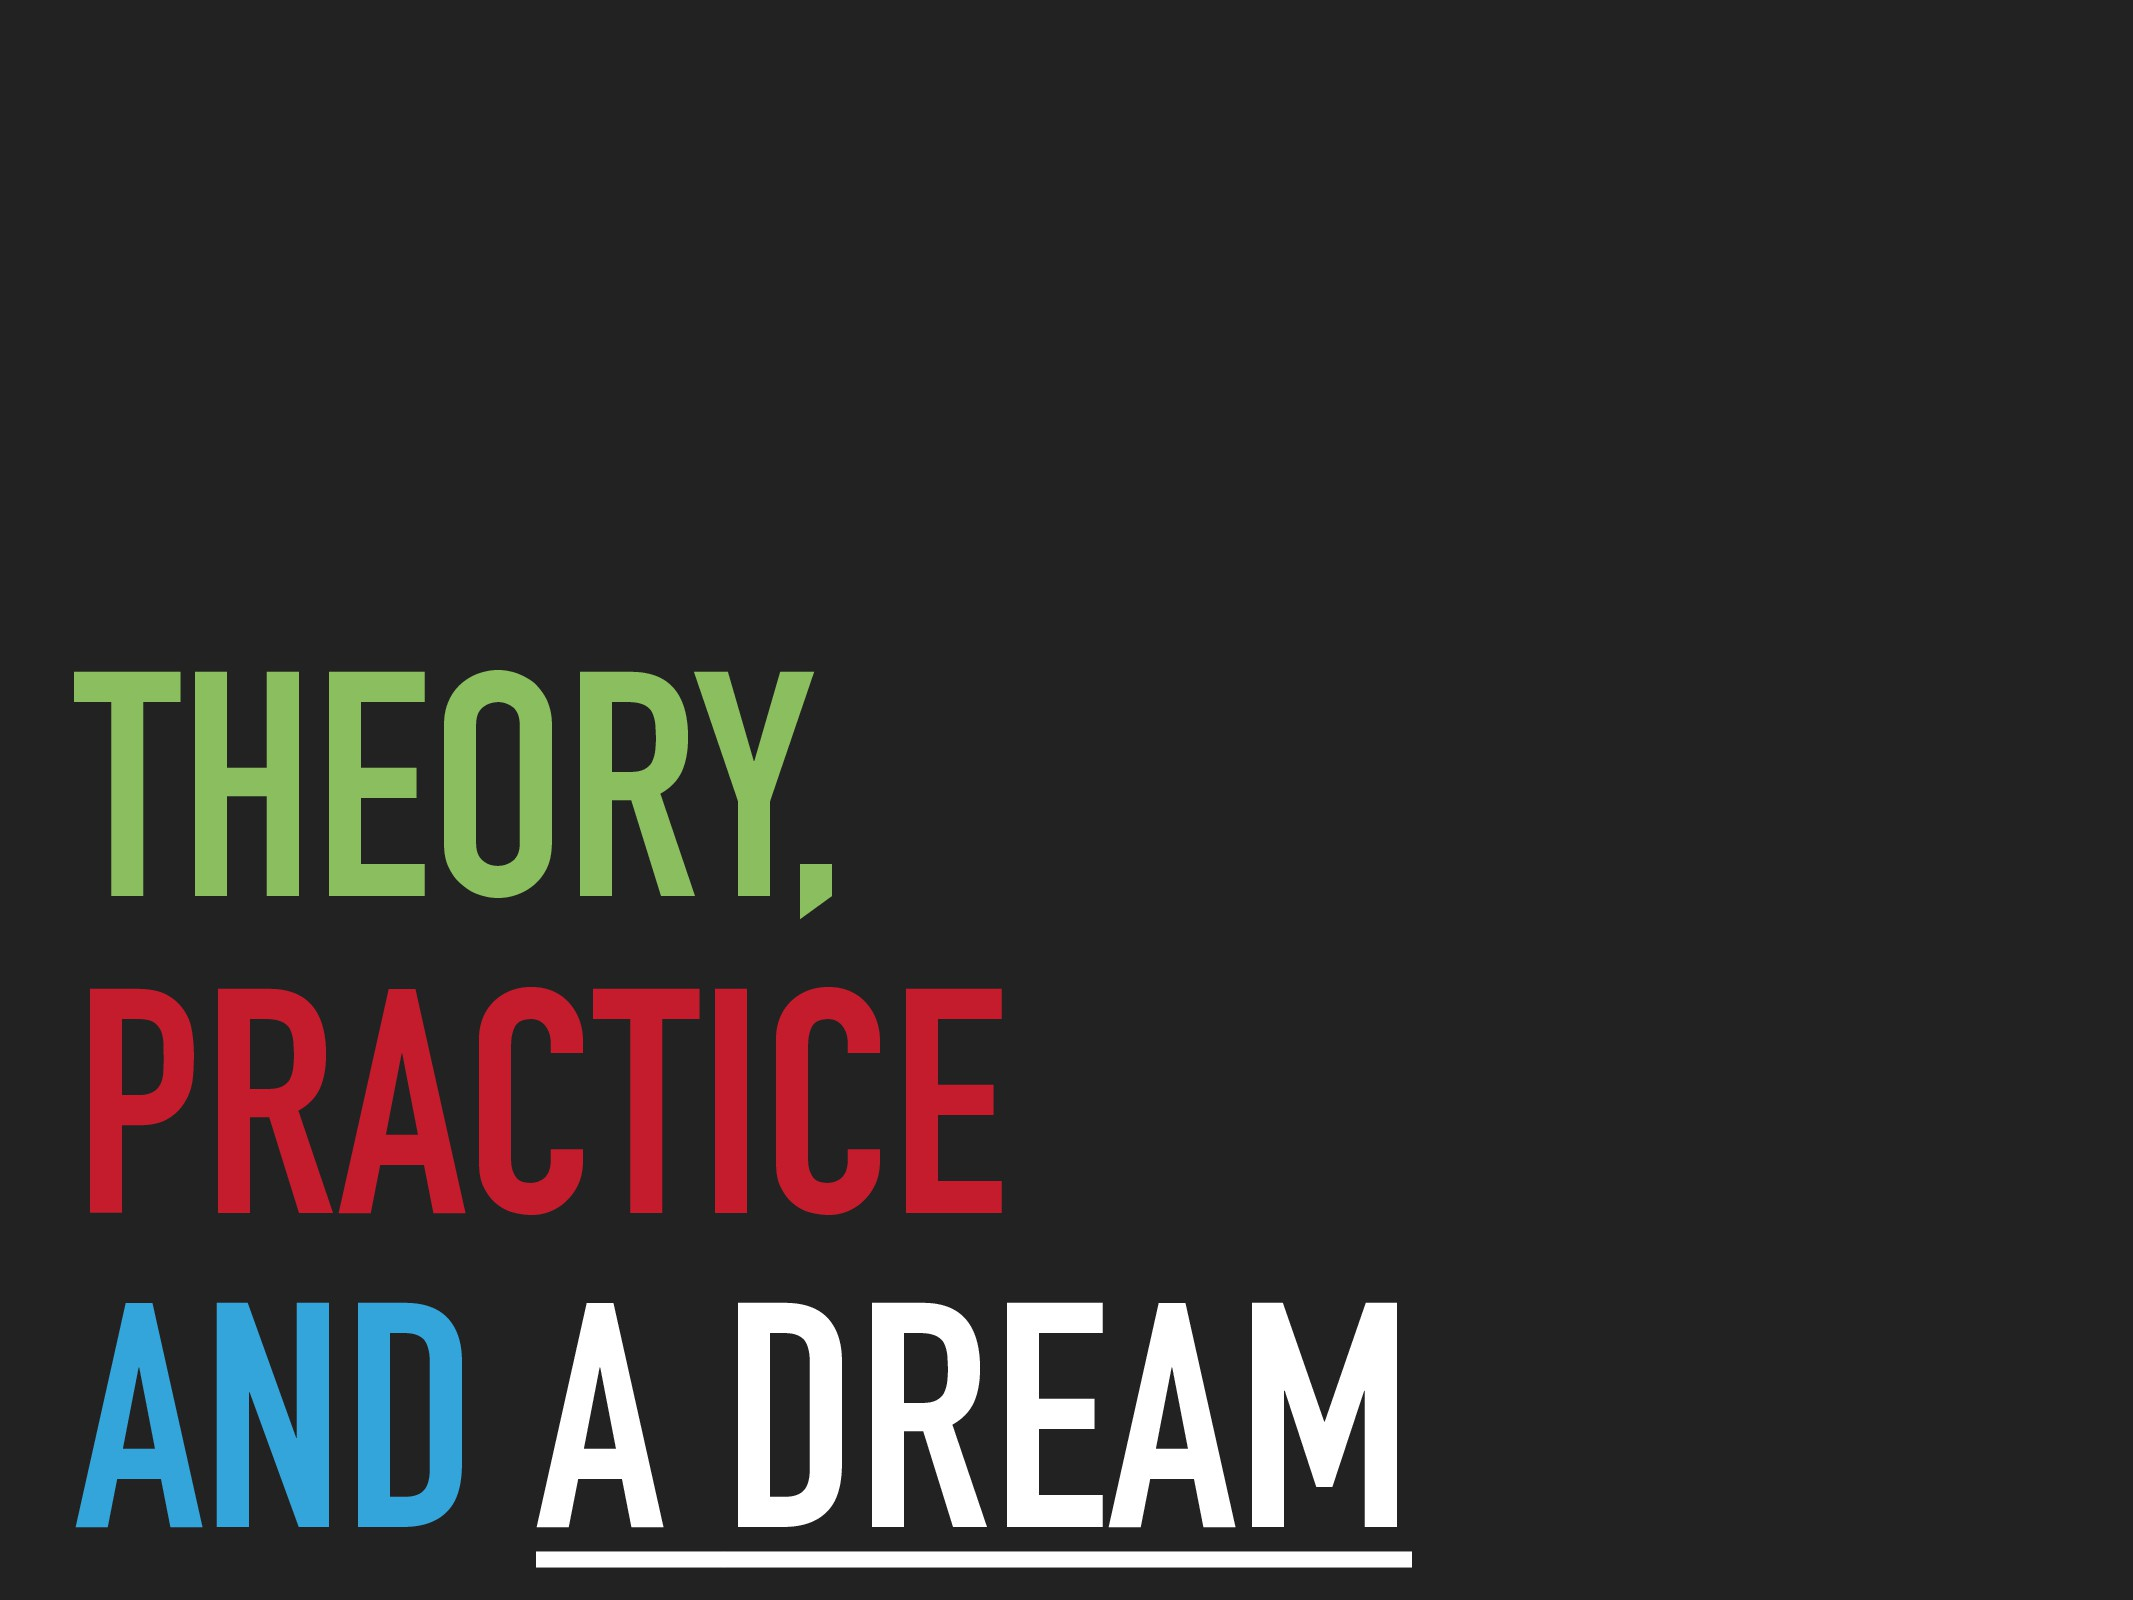 THEORY, PRACTICE AND A DREAM